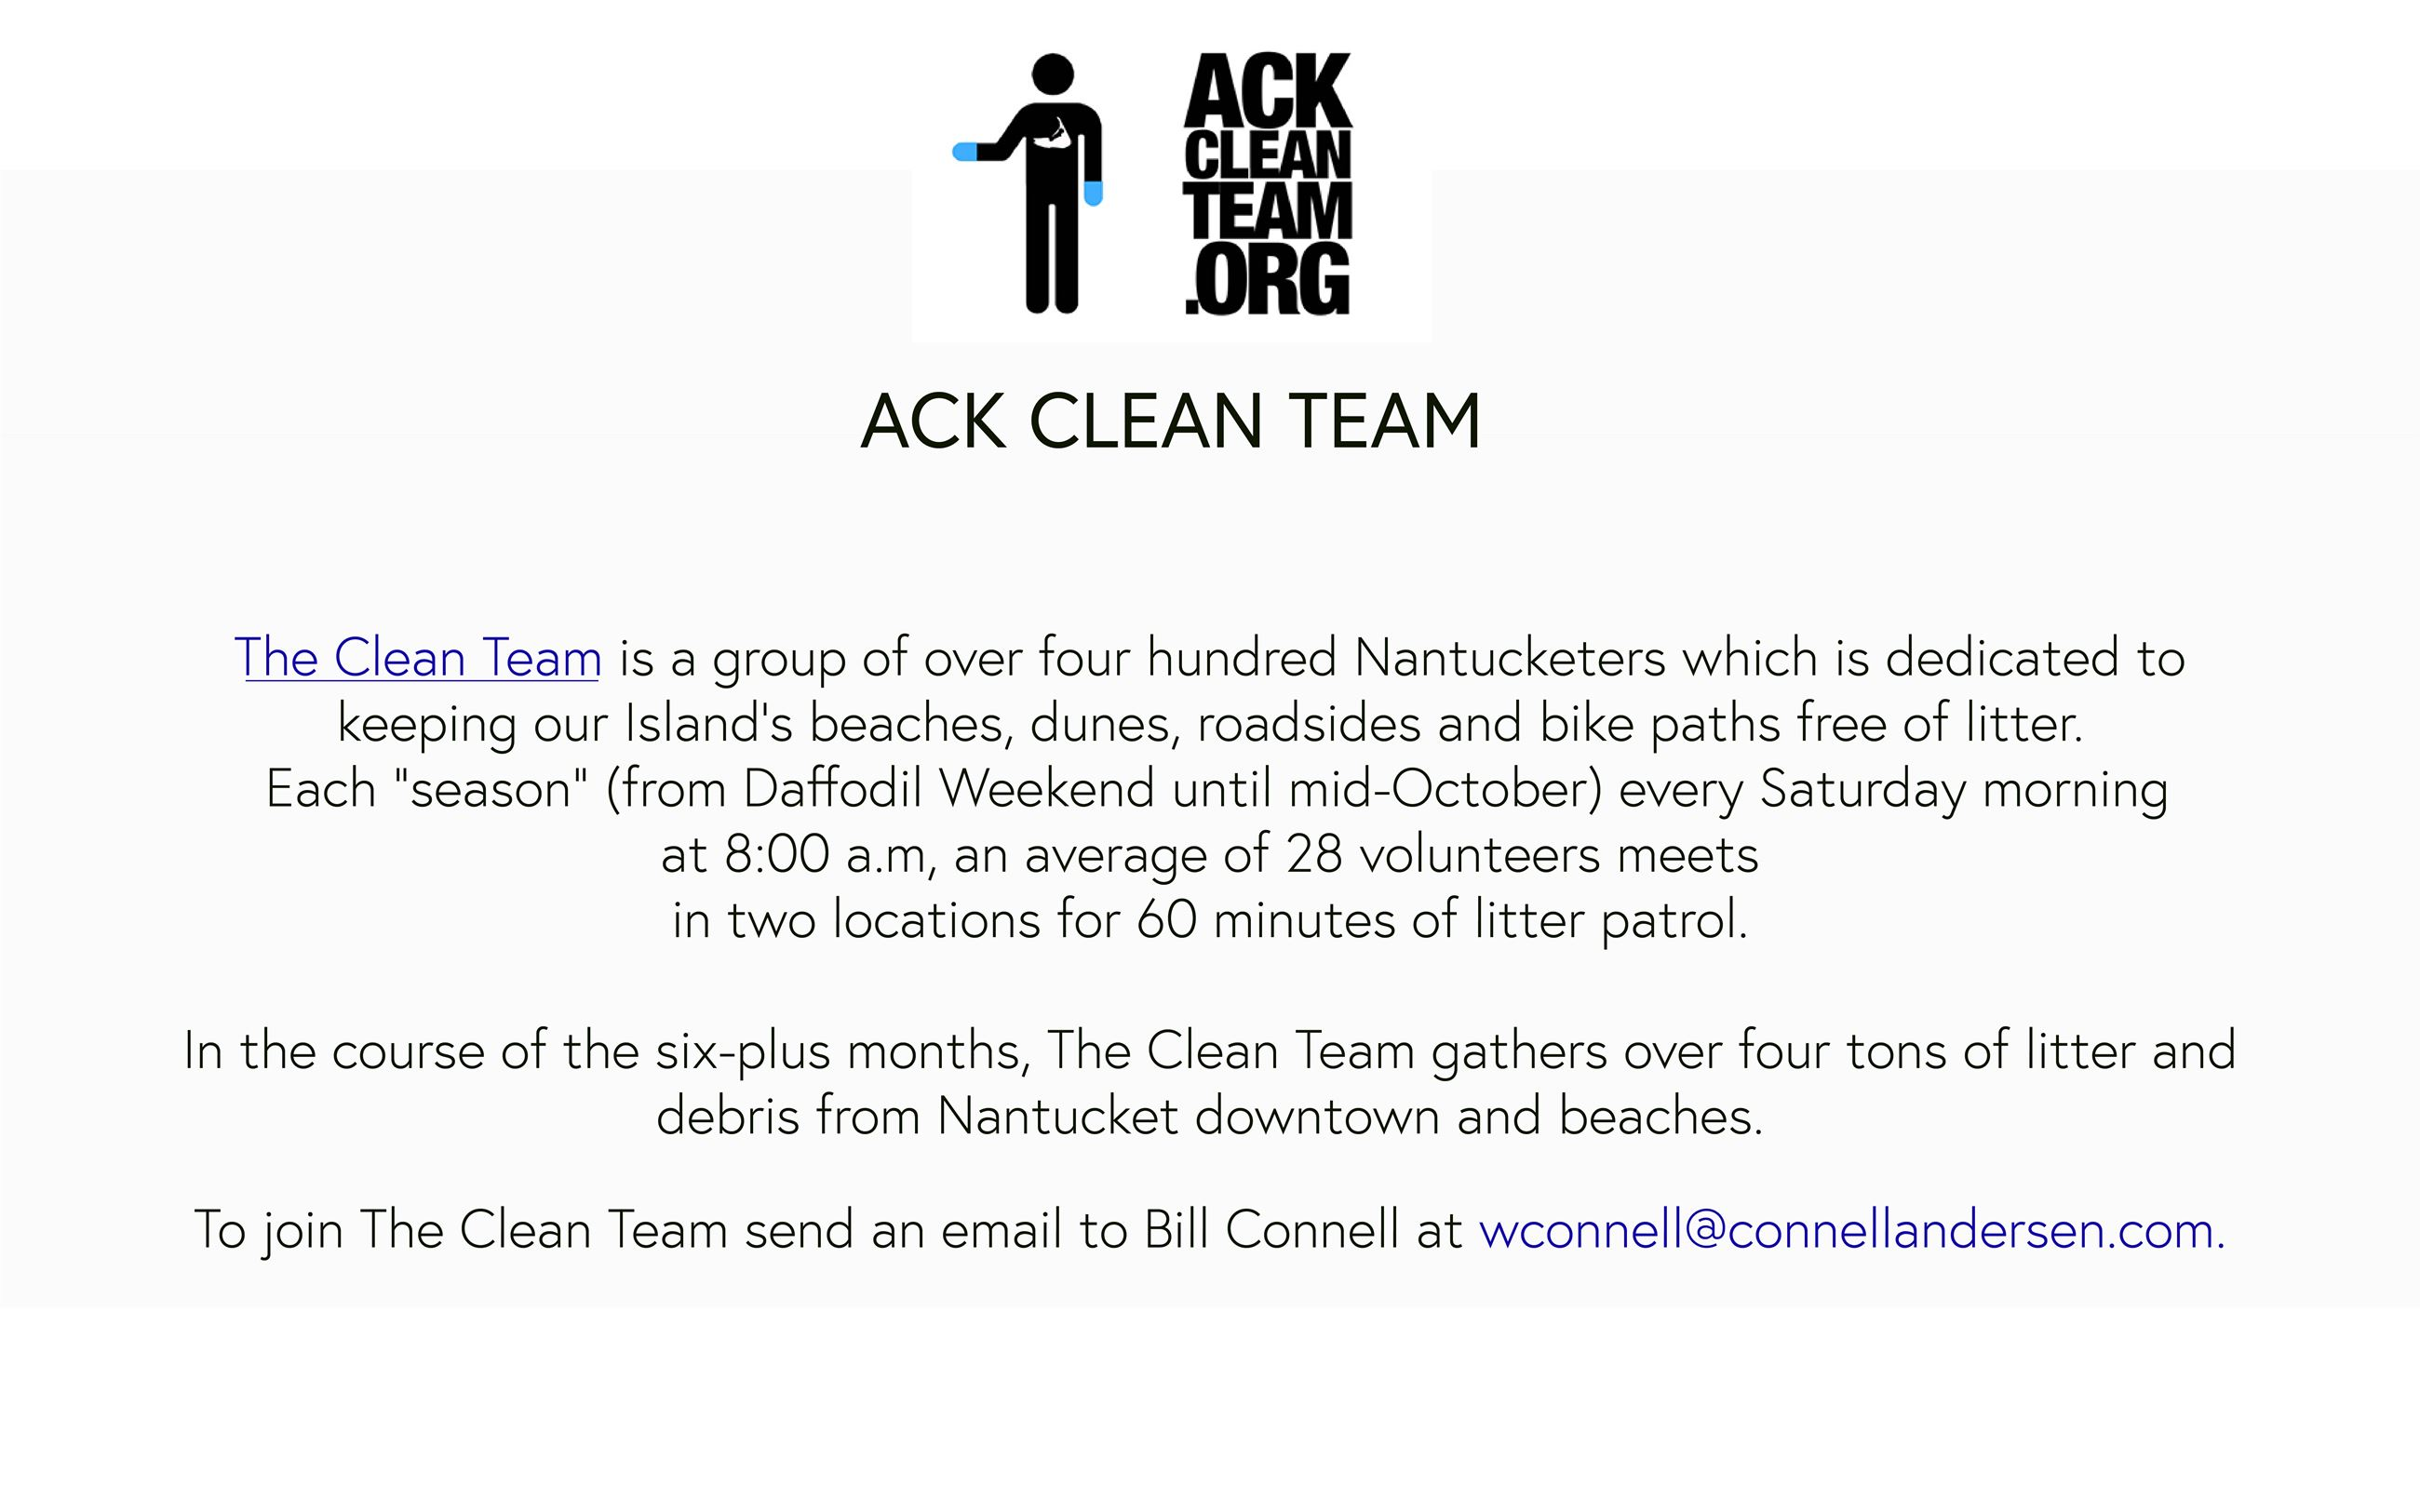 ACK clean team